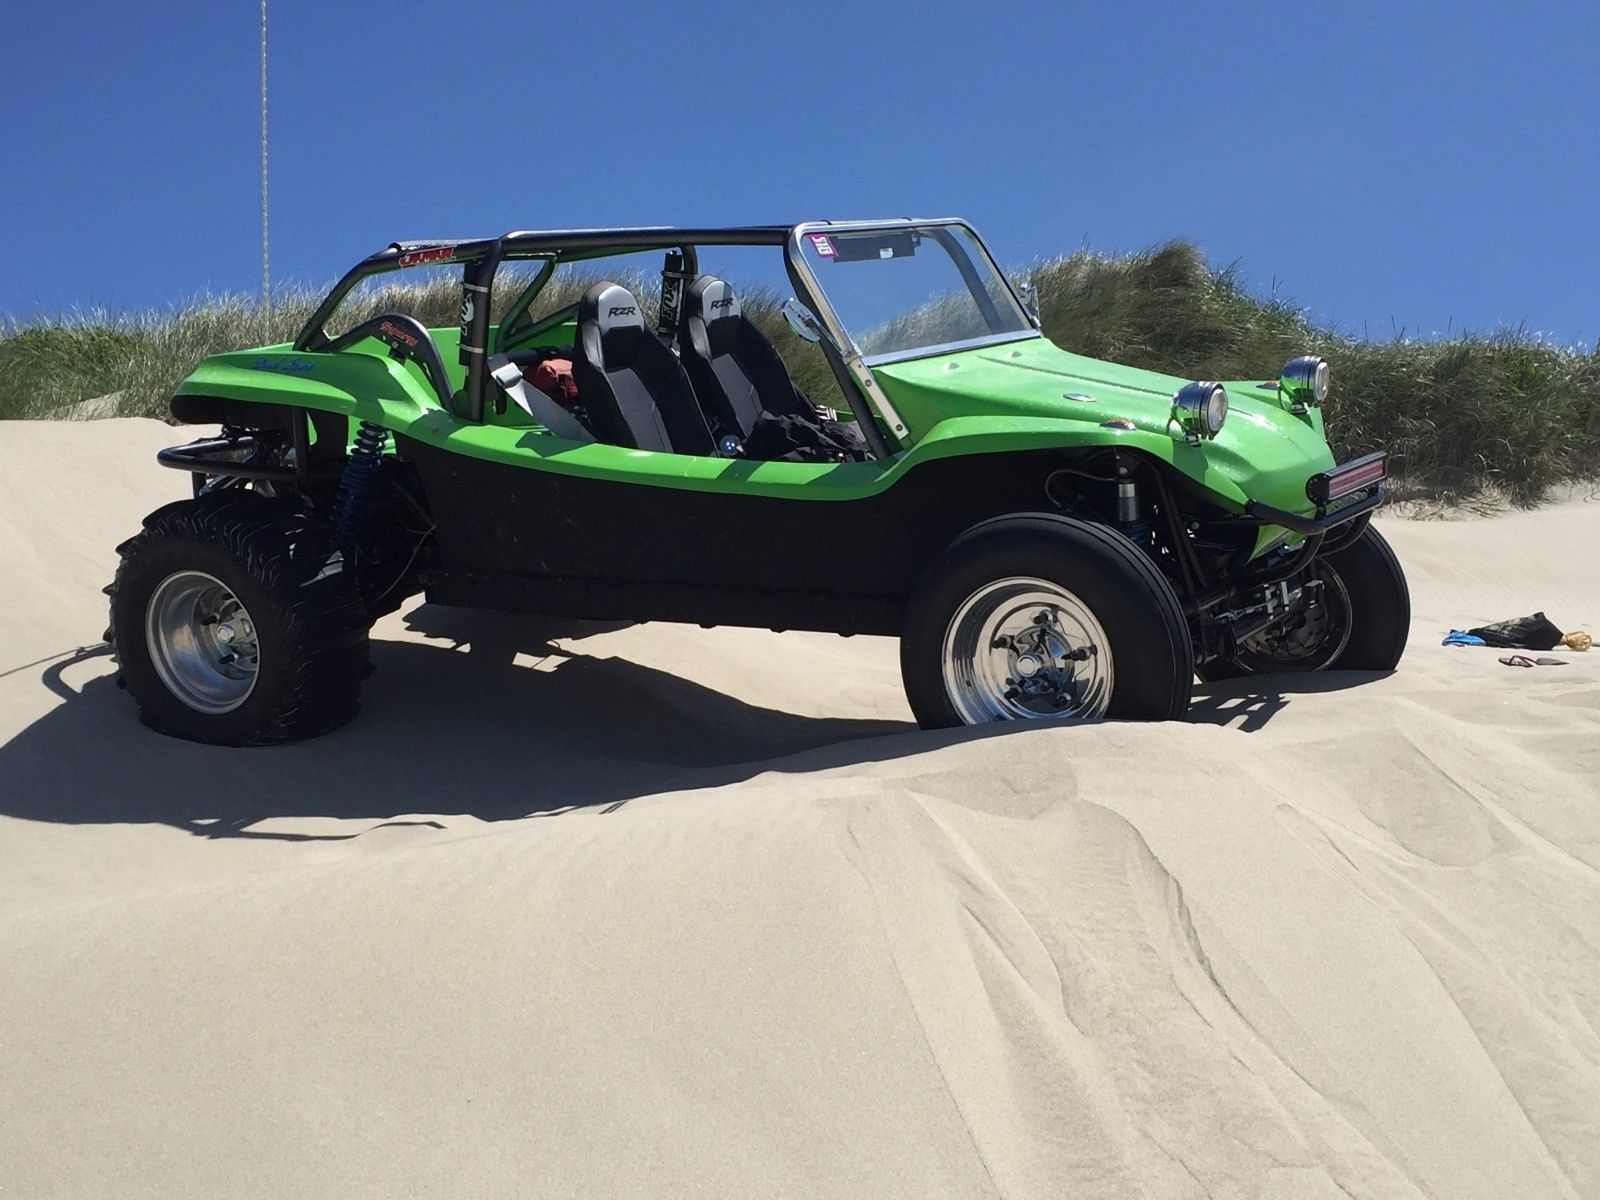 Pin by Easton on Vw dune buggy Dune buggy, Beach buggy